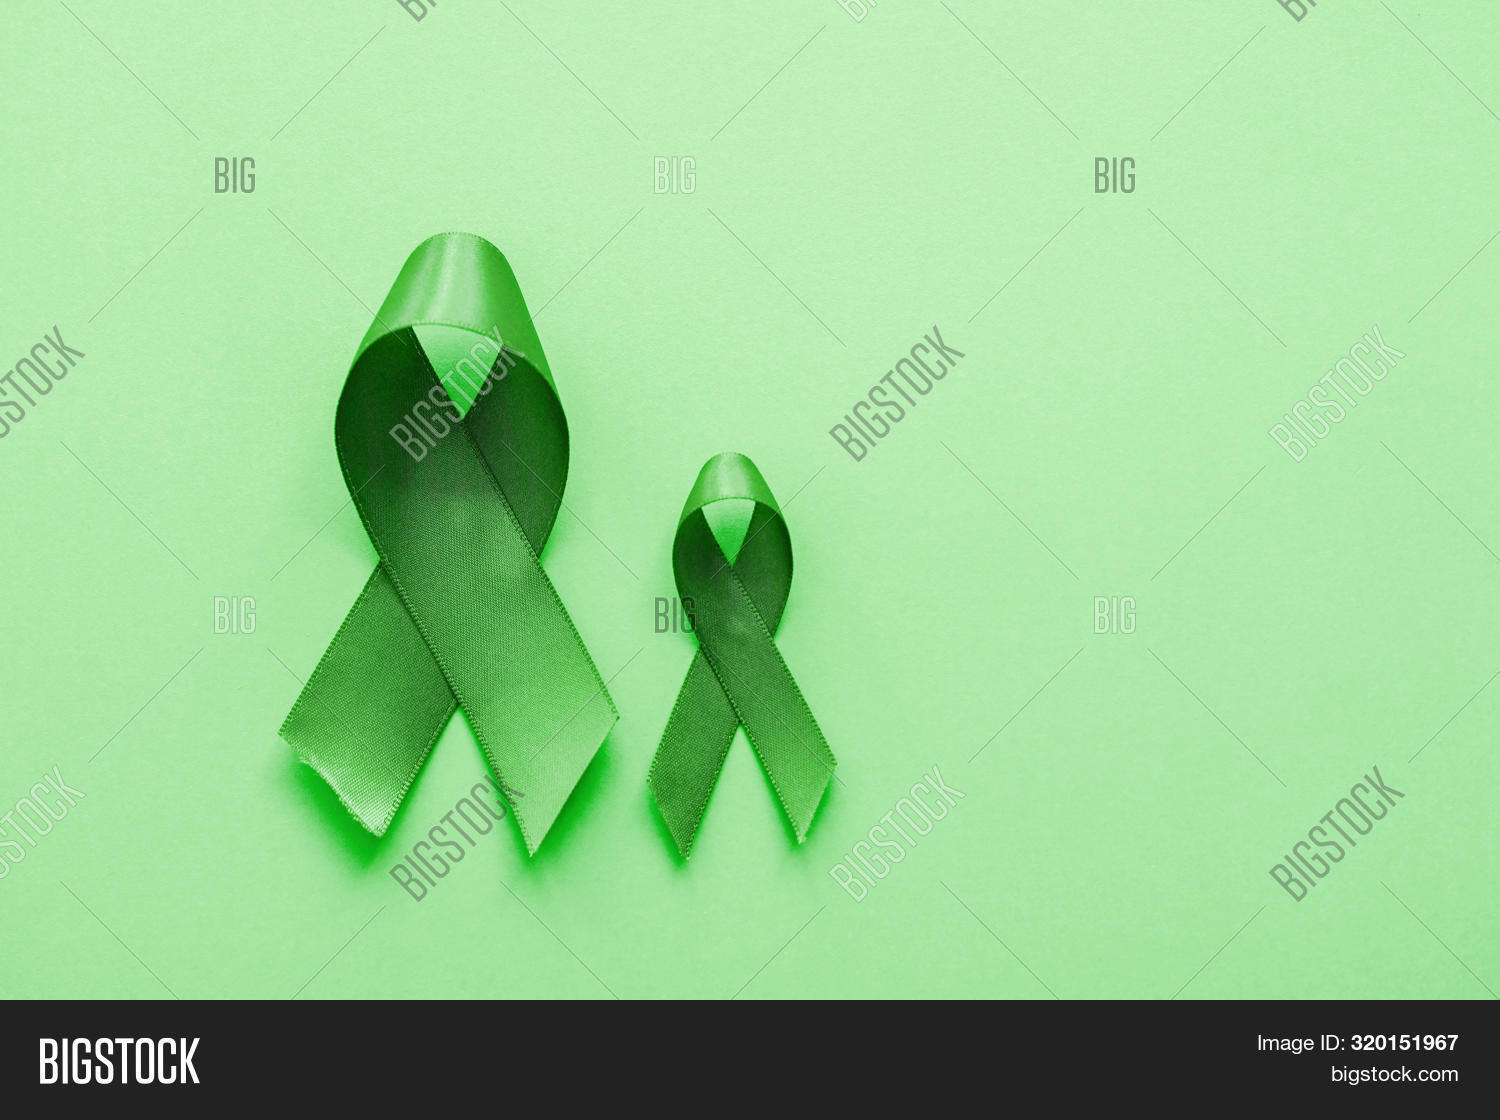 awareness,background,campaign,cancer,care,child,children,concept,cure,day,disease,donation,family,green,health,healthcare,help,hodgkin,hope,illness,kidney,kids,lime,lyme,lymphoma,medical,mental,month,non,organ,protection,research,ribbon,support,survivor,symbol,treatment,world